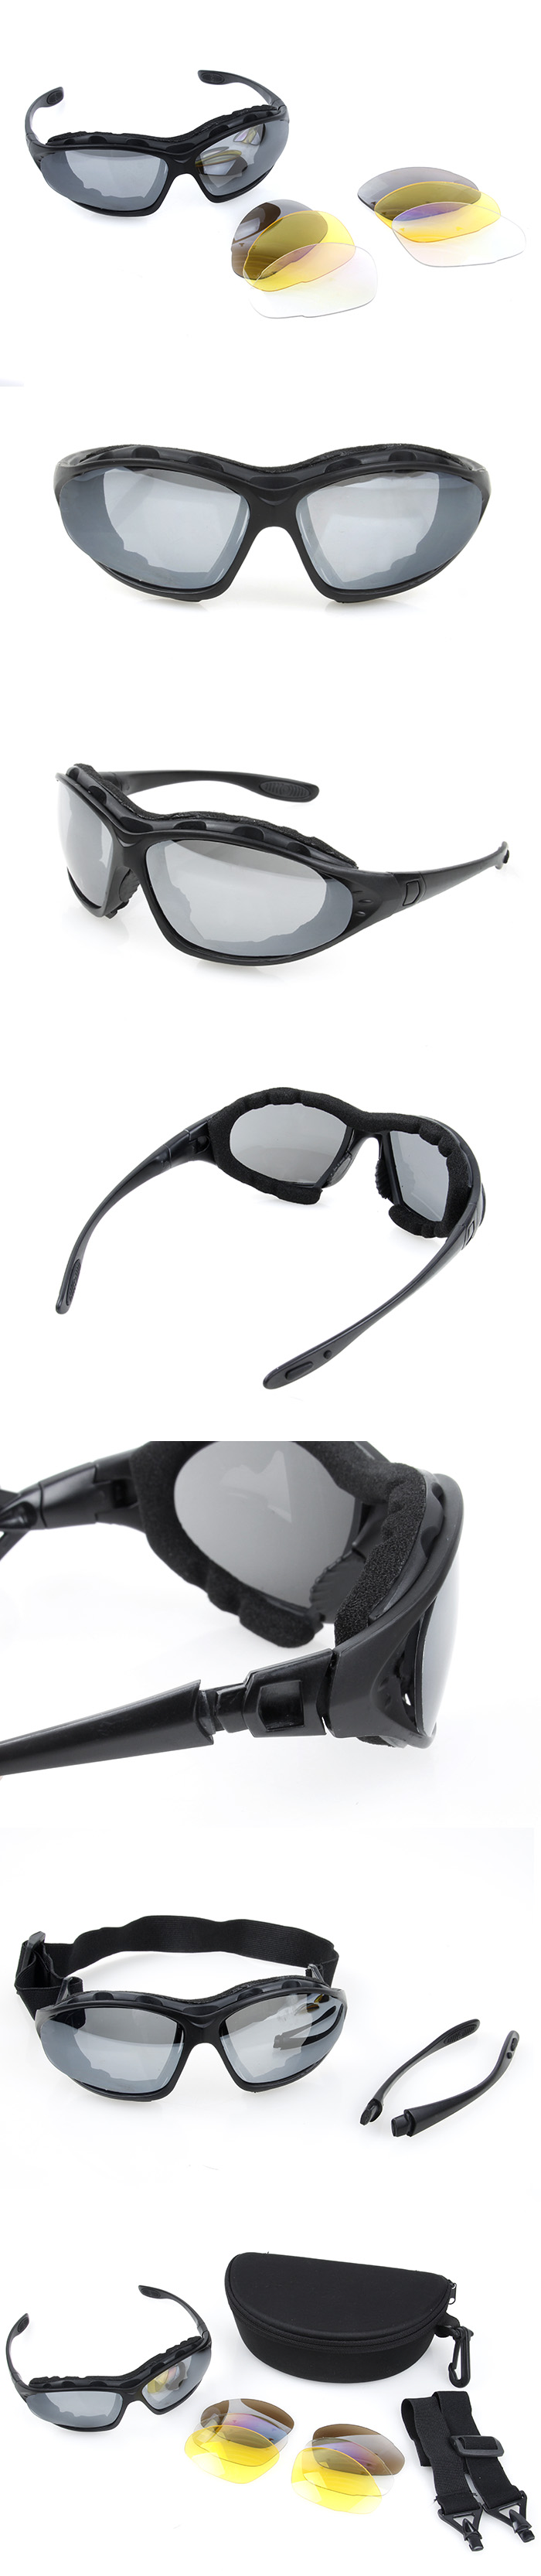 9ff3f1c19f3 This polycarbonate lenses offer the best protection for your eyes. Nylon  glasses frame has lightweight construction. It is best choice for your game  or ...